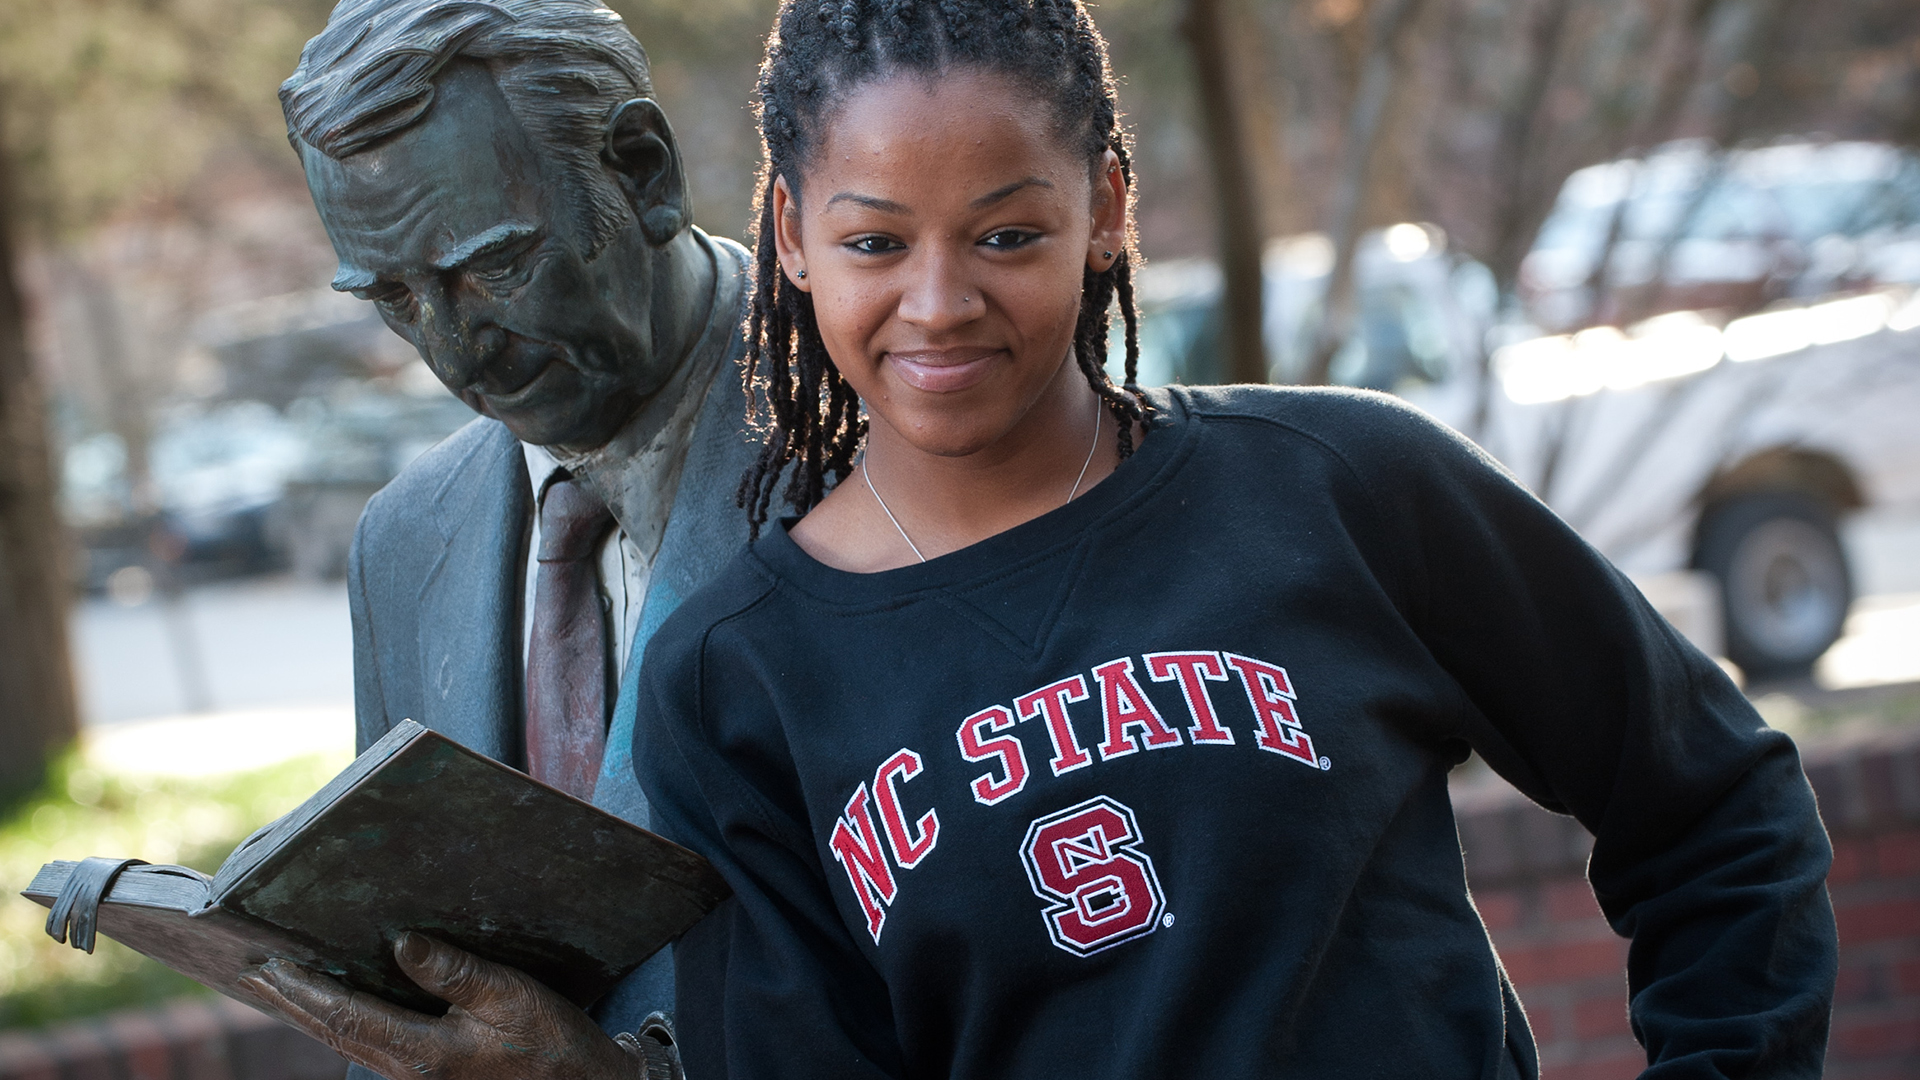 Female student with statue on campus.